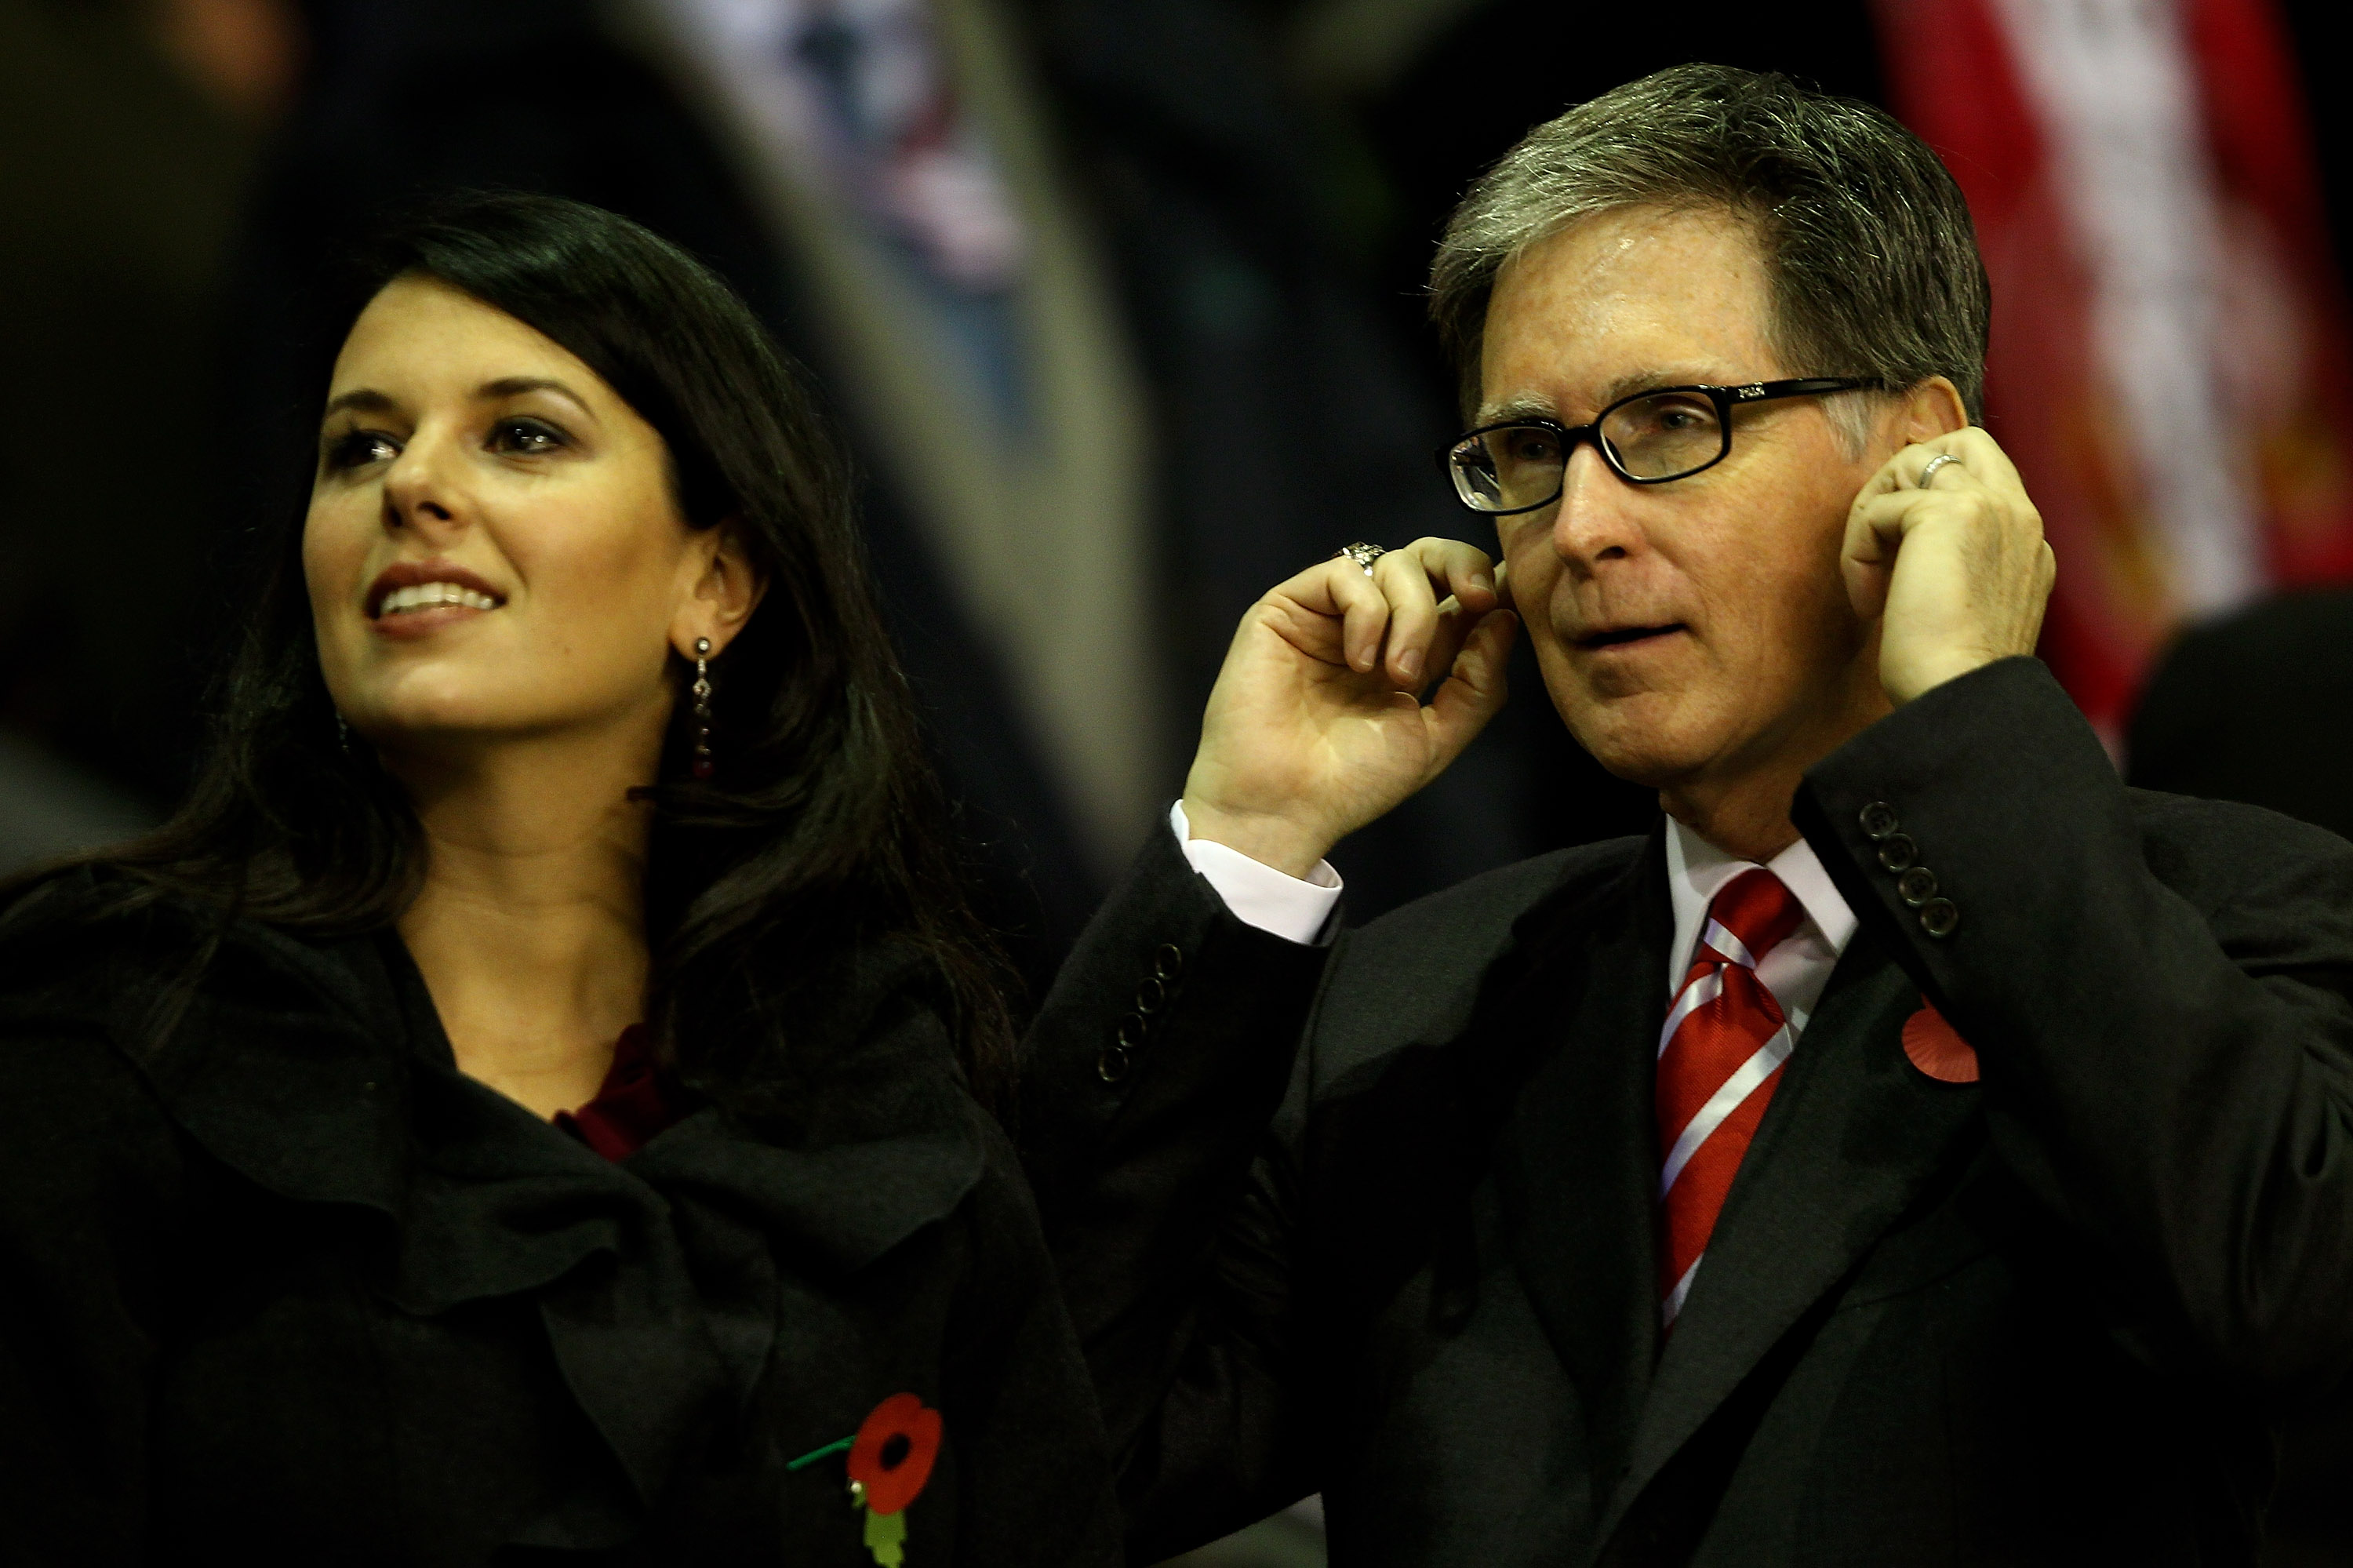 LIVERPOOL, ENGLAND - NOVEMBER 04:  Liverpool Owner John Henry stands with Wife Linda Pizzuti  prior to the UEFA Europa League Group K match beteween Liverpool and SSC Napoli at Anfield on November 4, 2010 in Liverpool, England.  (Photo by Clive Brunskill/